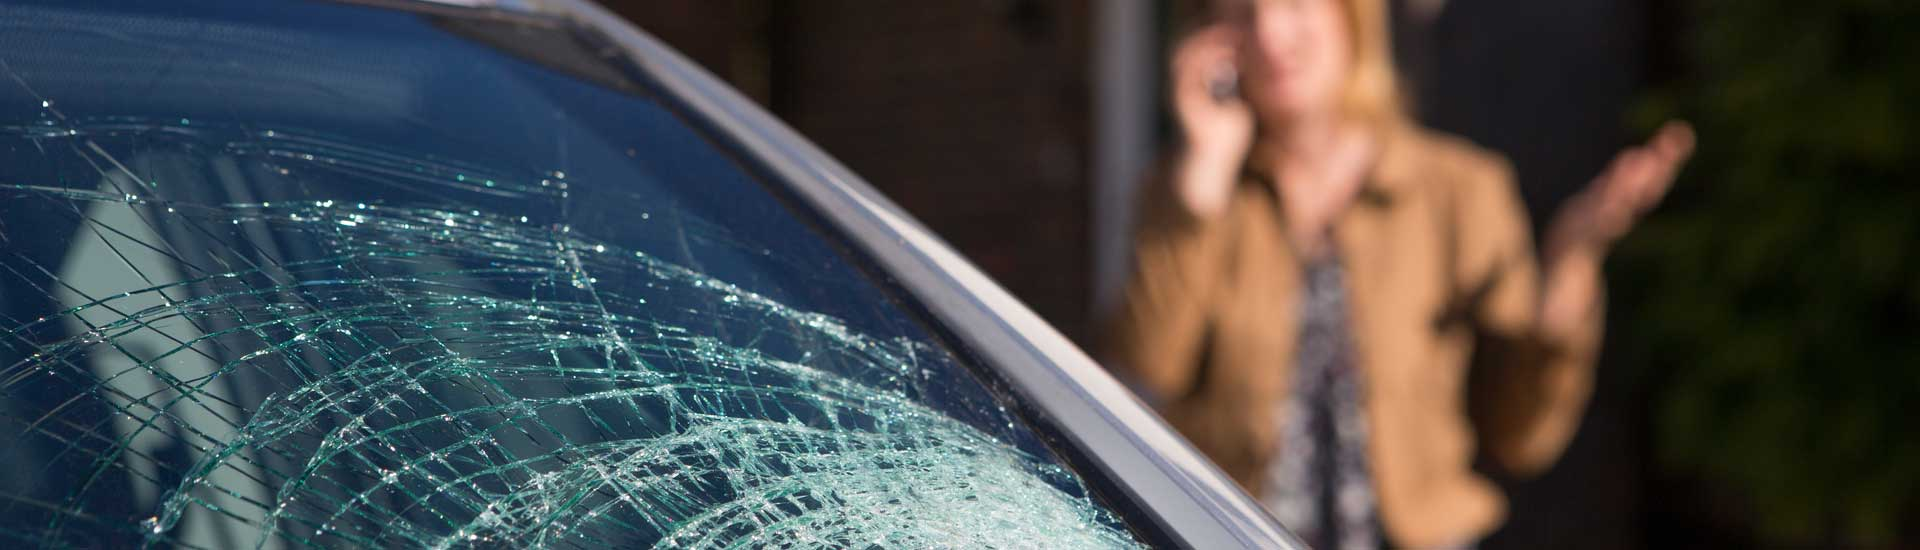 Houston Auto Glass Repair Specialist